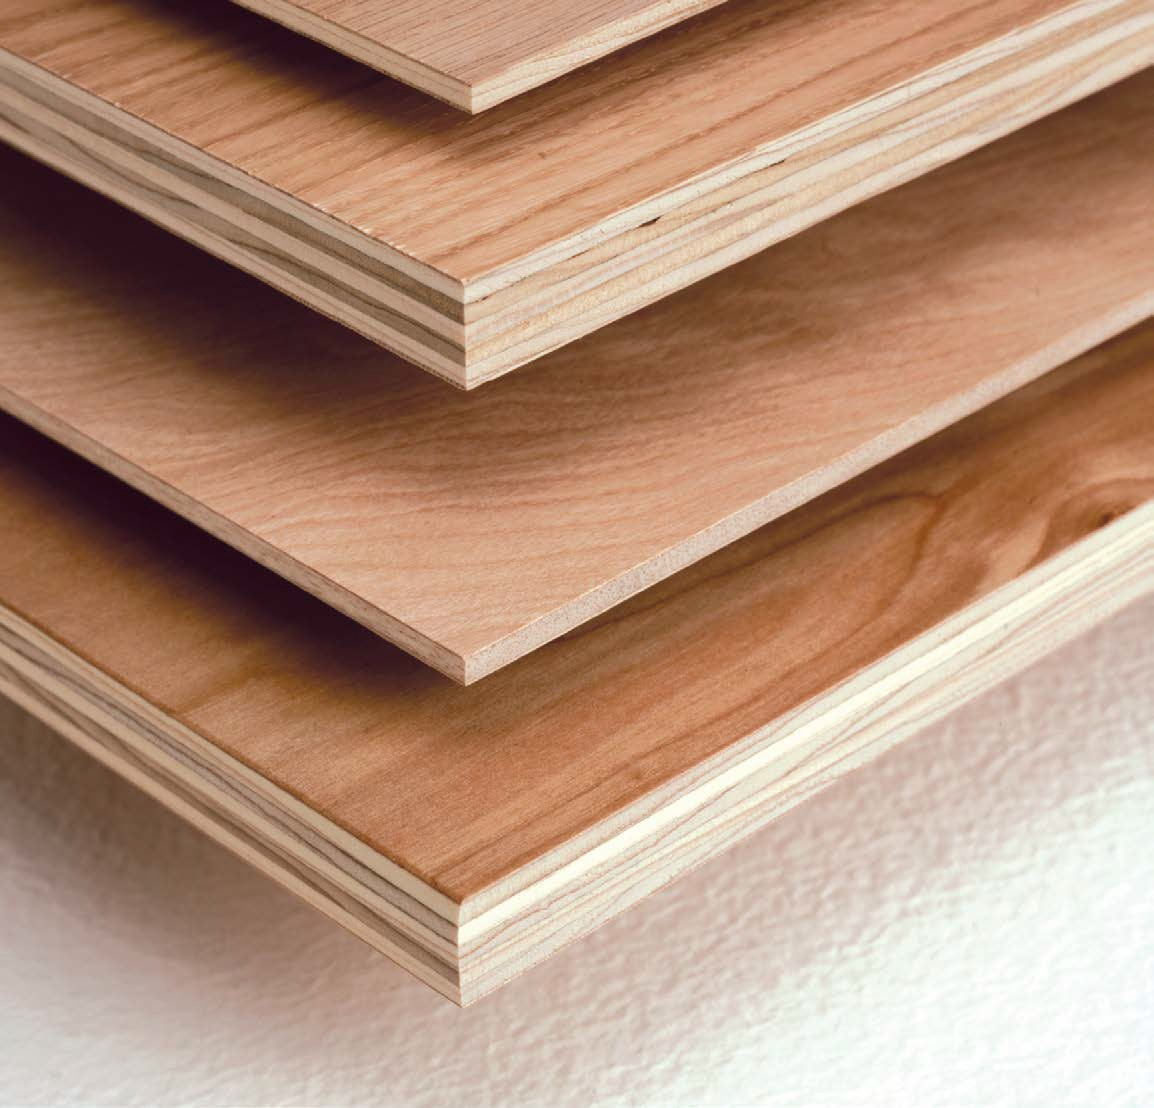 Shop Grade Vs Cabinet Grade Plywood